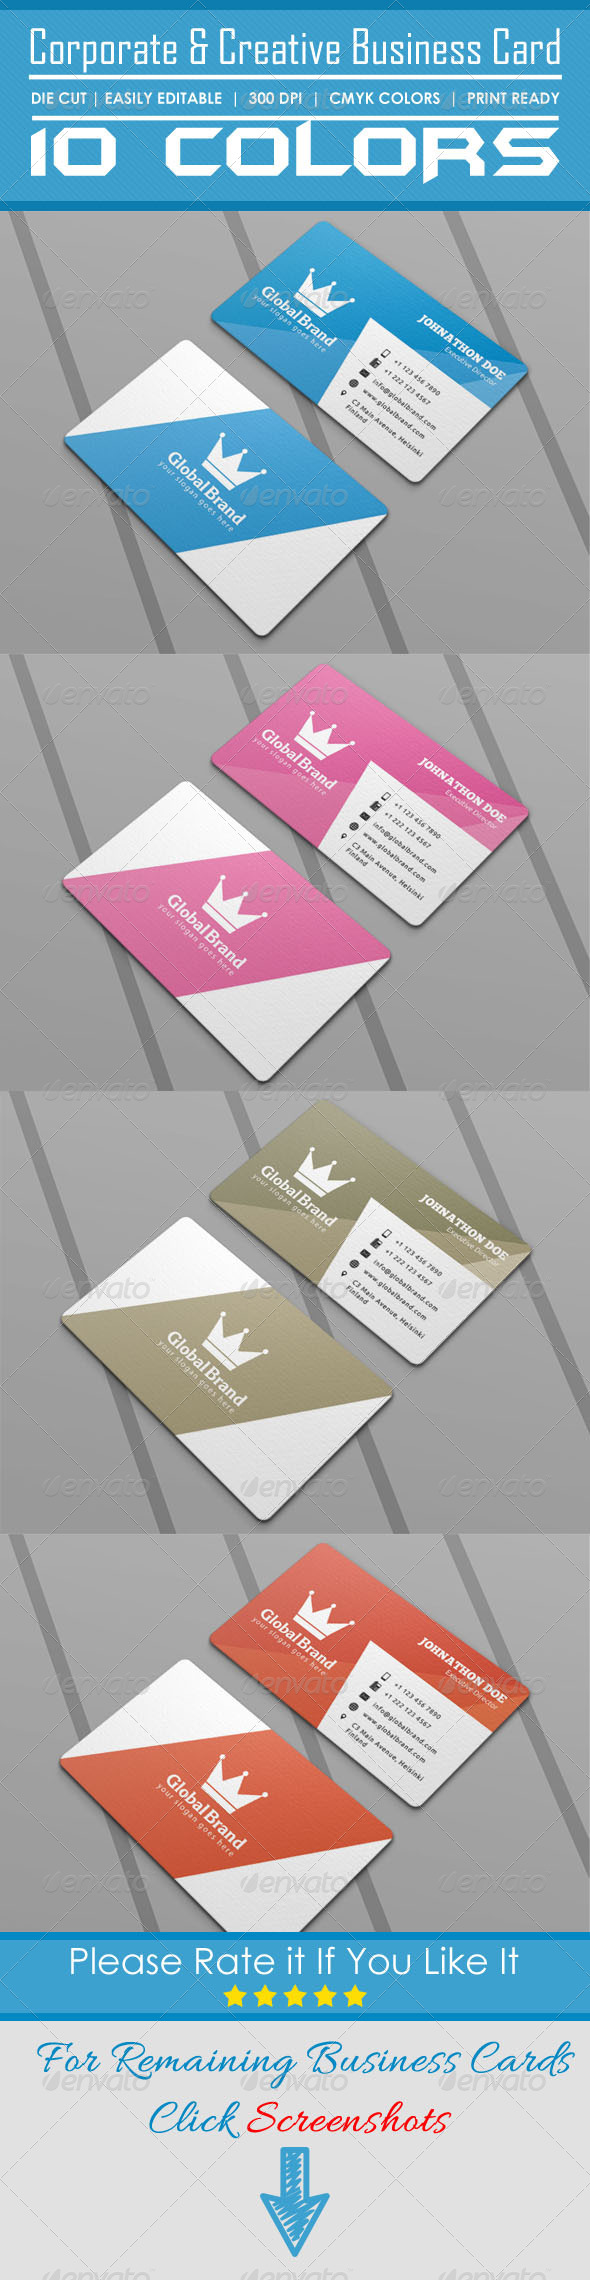 Corporate & Creative Die Cut Business Card - Corporate Business Cards